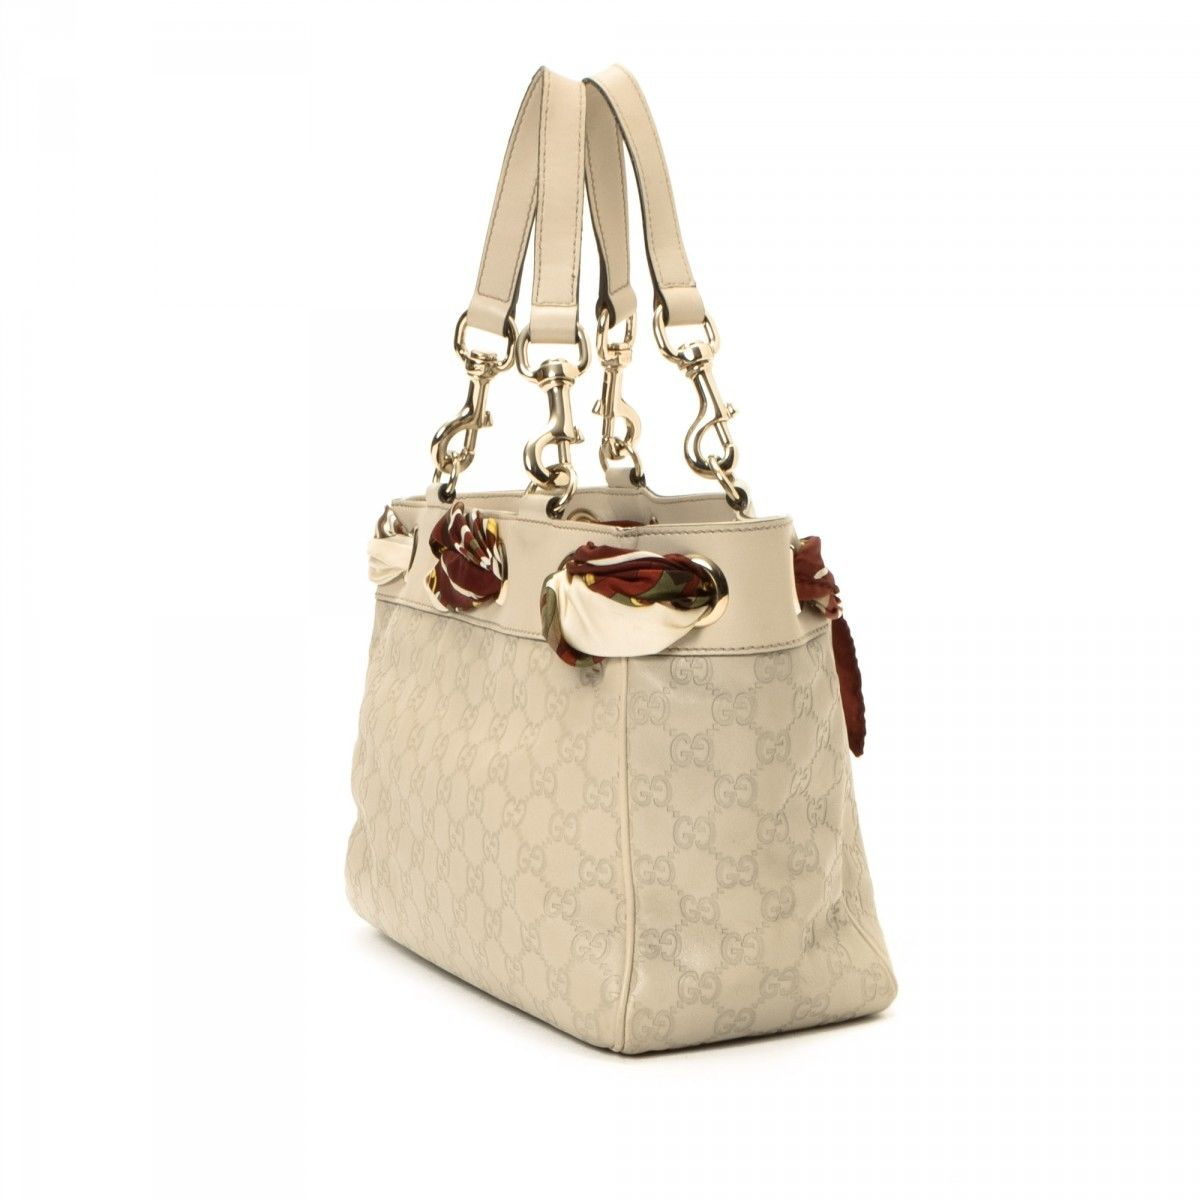 9e5ace621a09 Gucci Tote with Scarf Guccissima Leather - LXRandCo - Pre-Owned ...